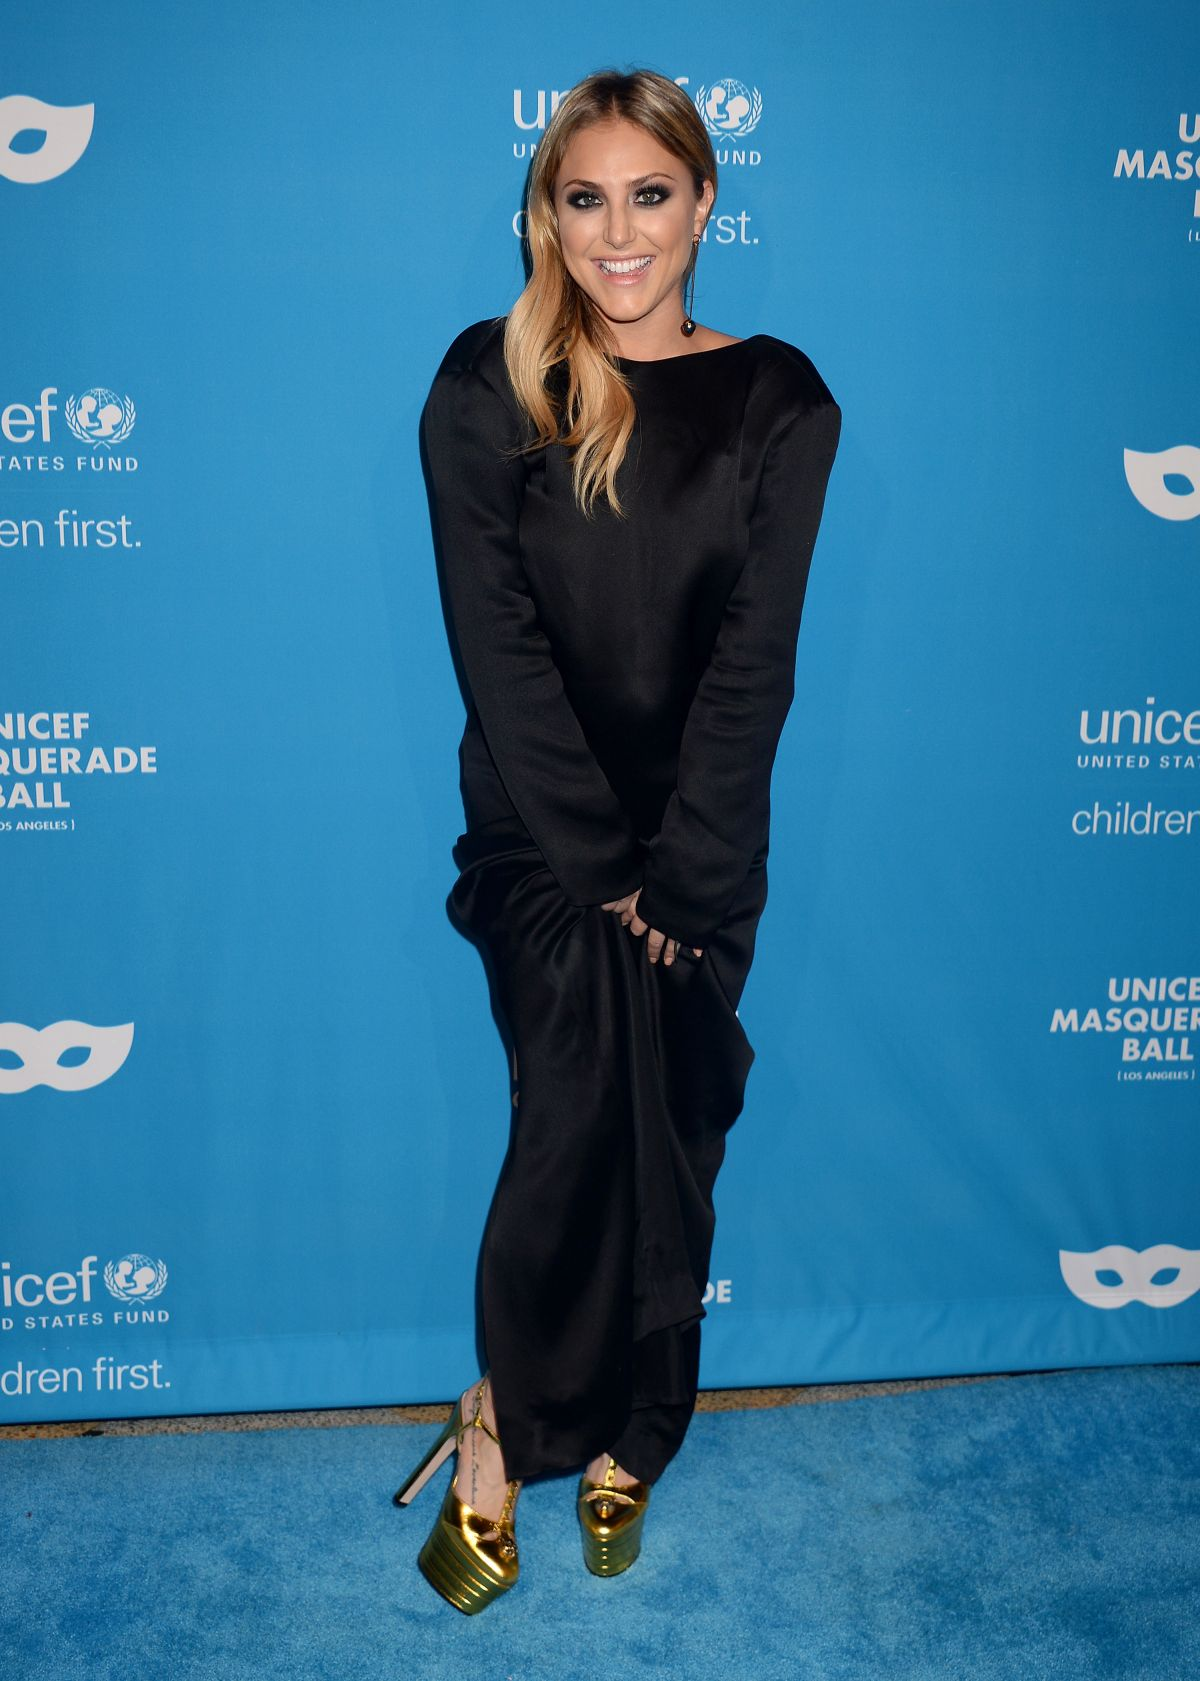 CASSIE SCERBO at 2016 Unicef Masquerade Ball in Los Angeles 10/27 ...